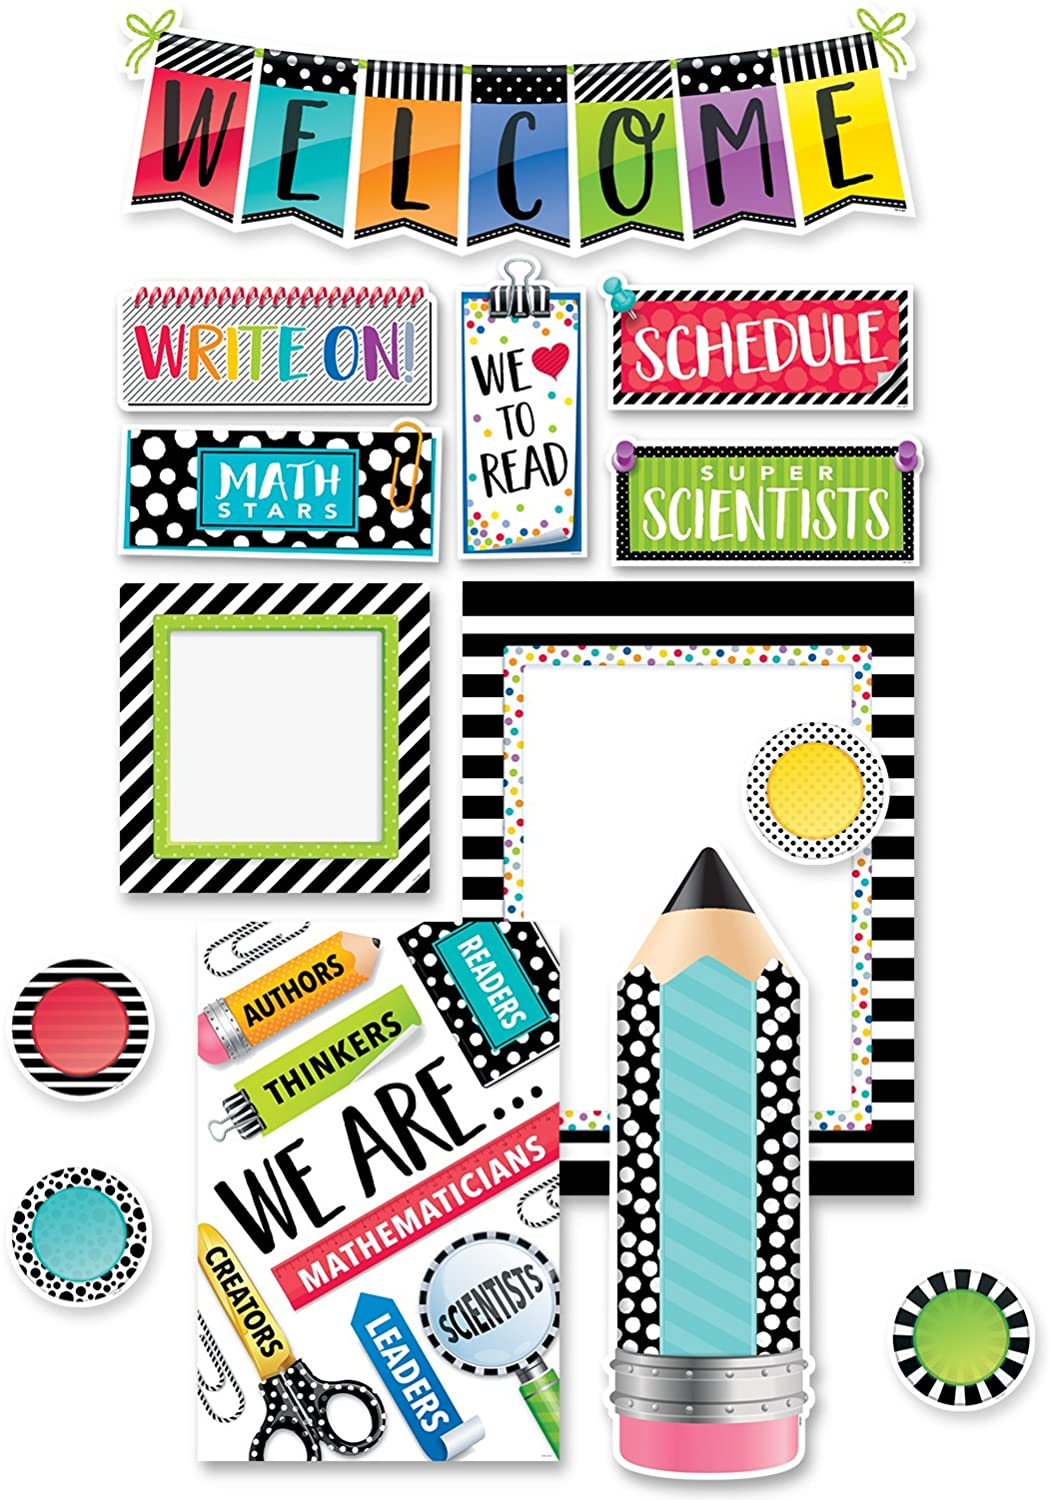 Creative Teaching Press Bold & Bright Bulletin Board Set (Room Displays and Decoration for Classrooms, Learning Spaces and More)